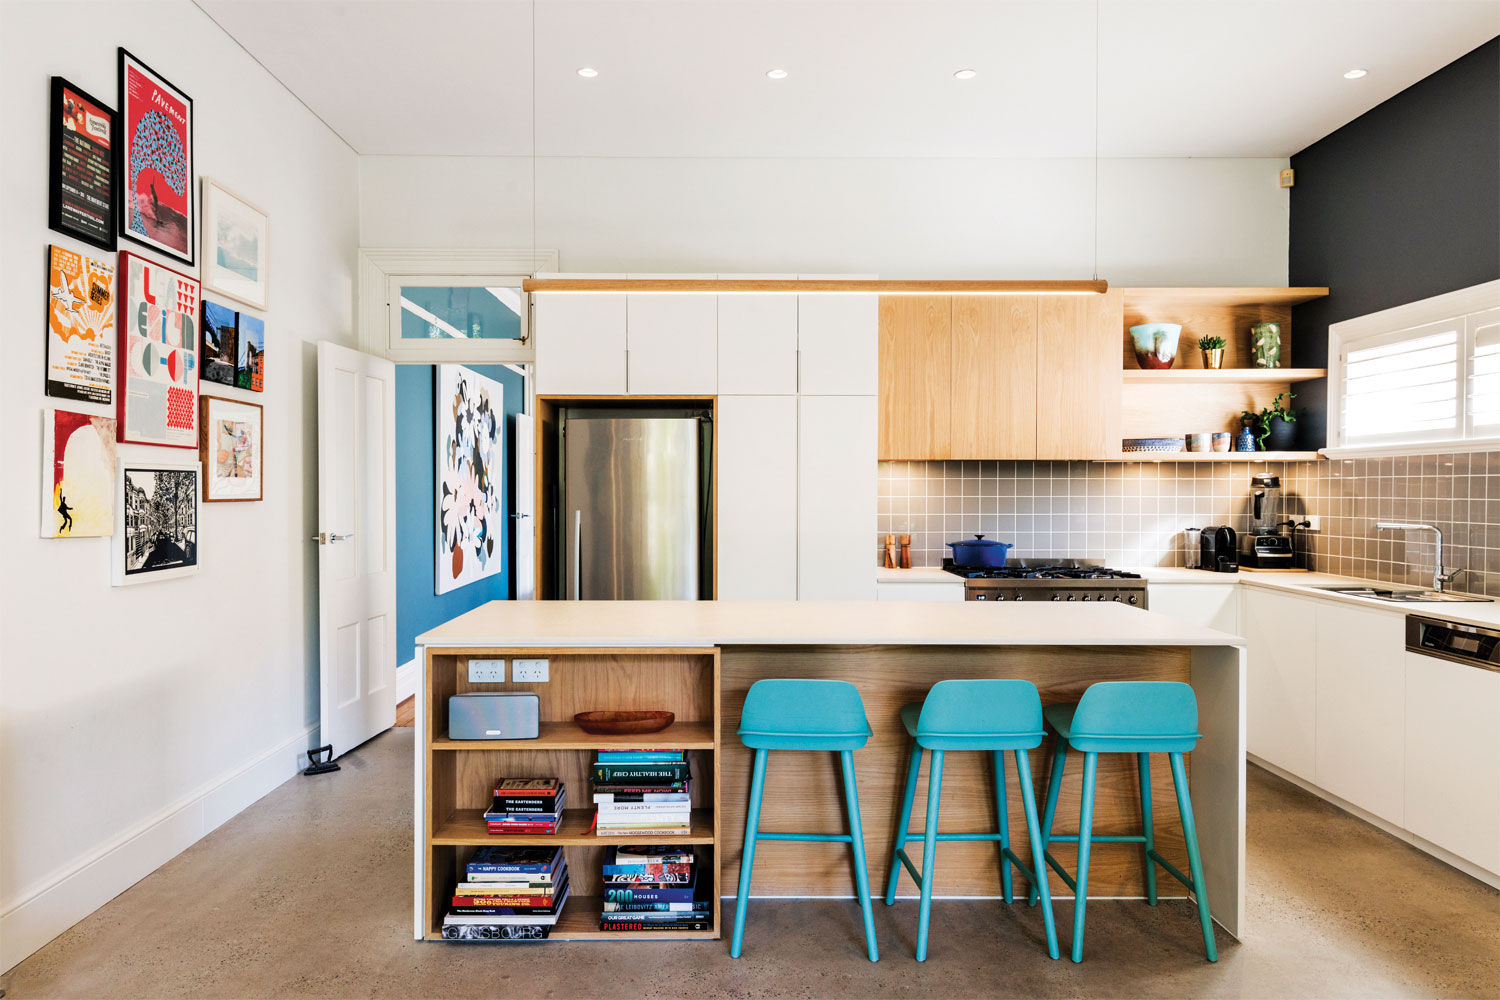 9 quality kitchen designs: 6. Cool and colourful